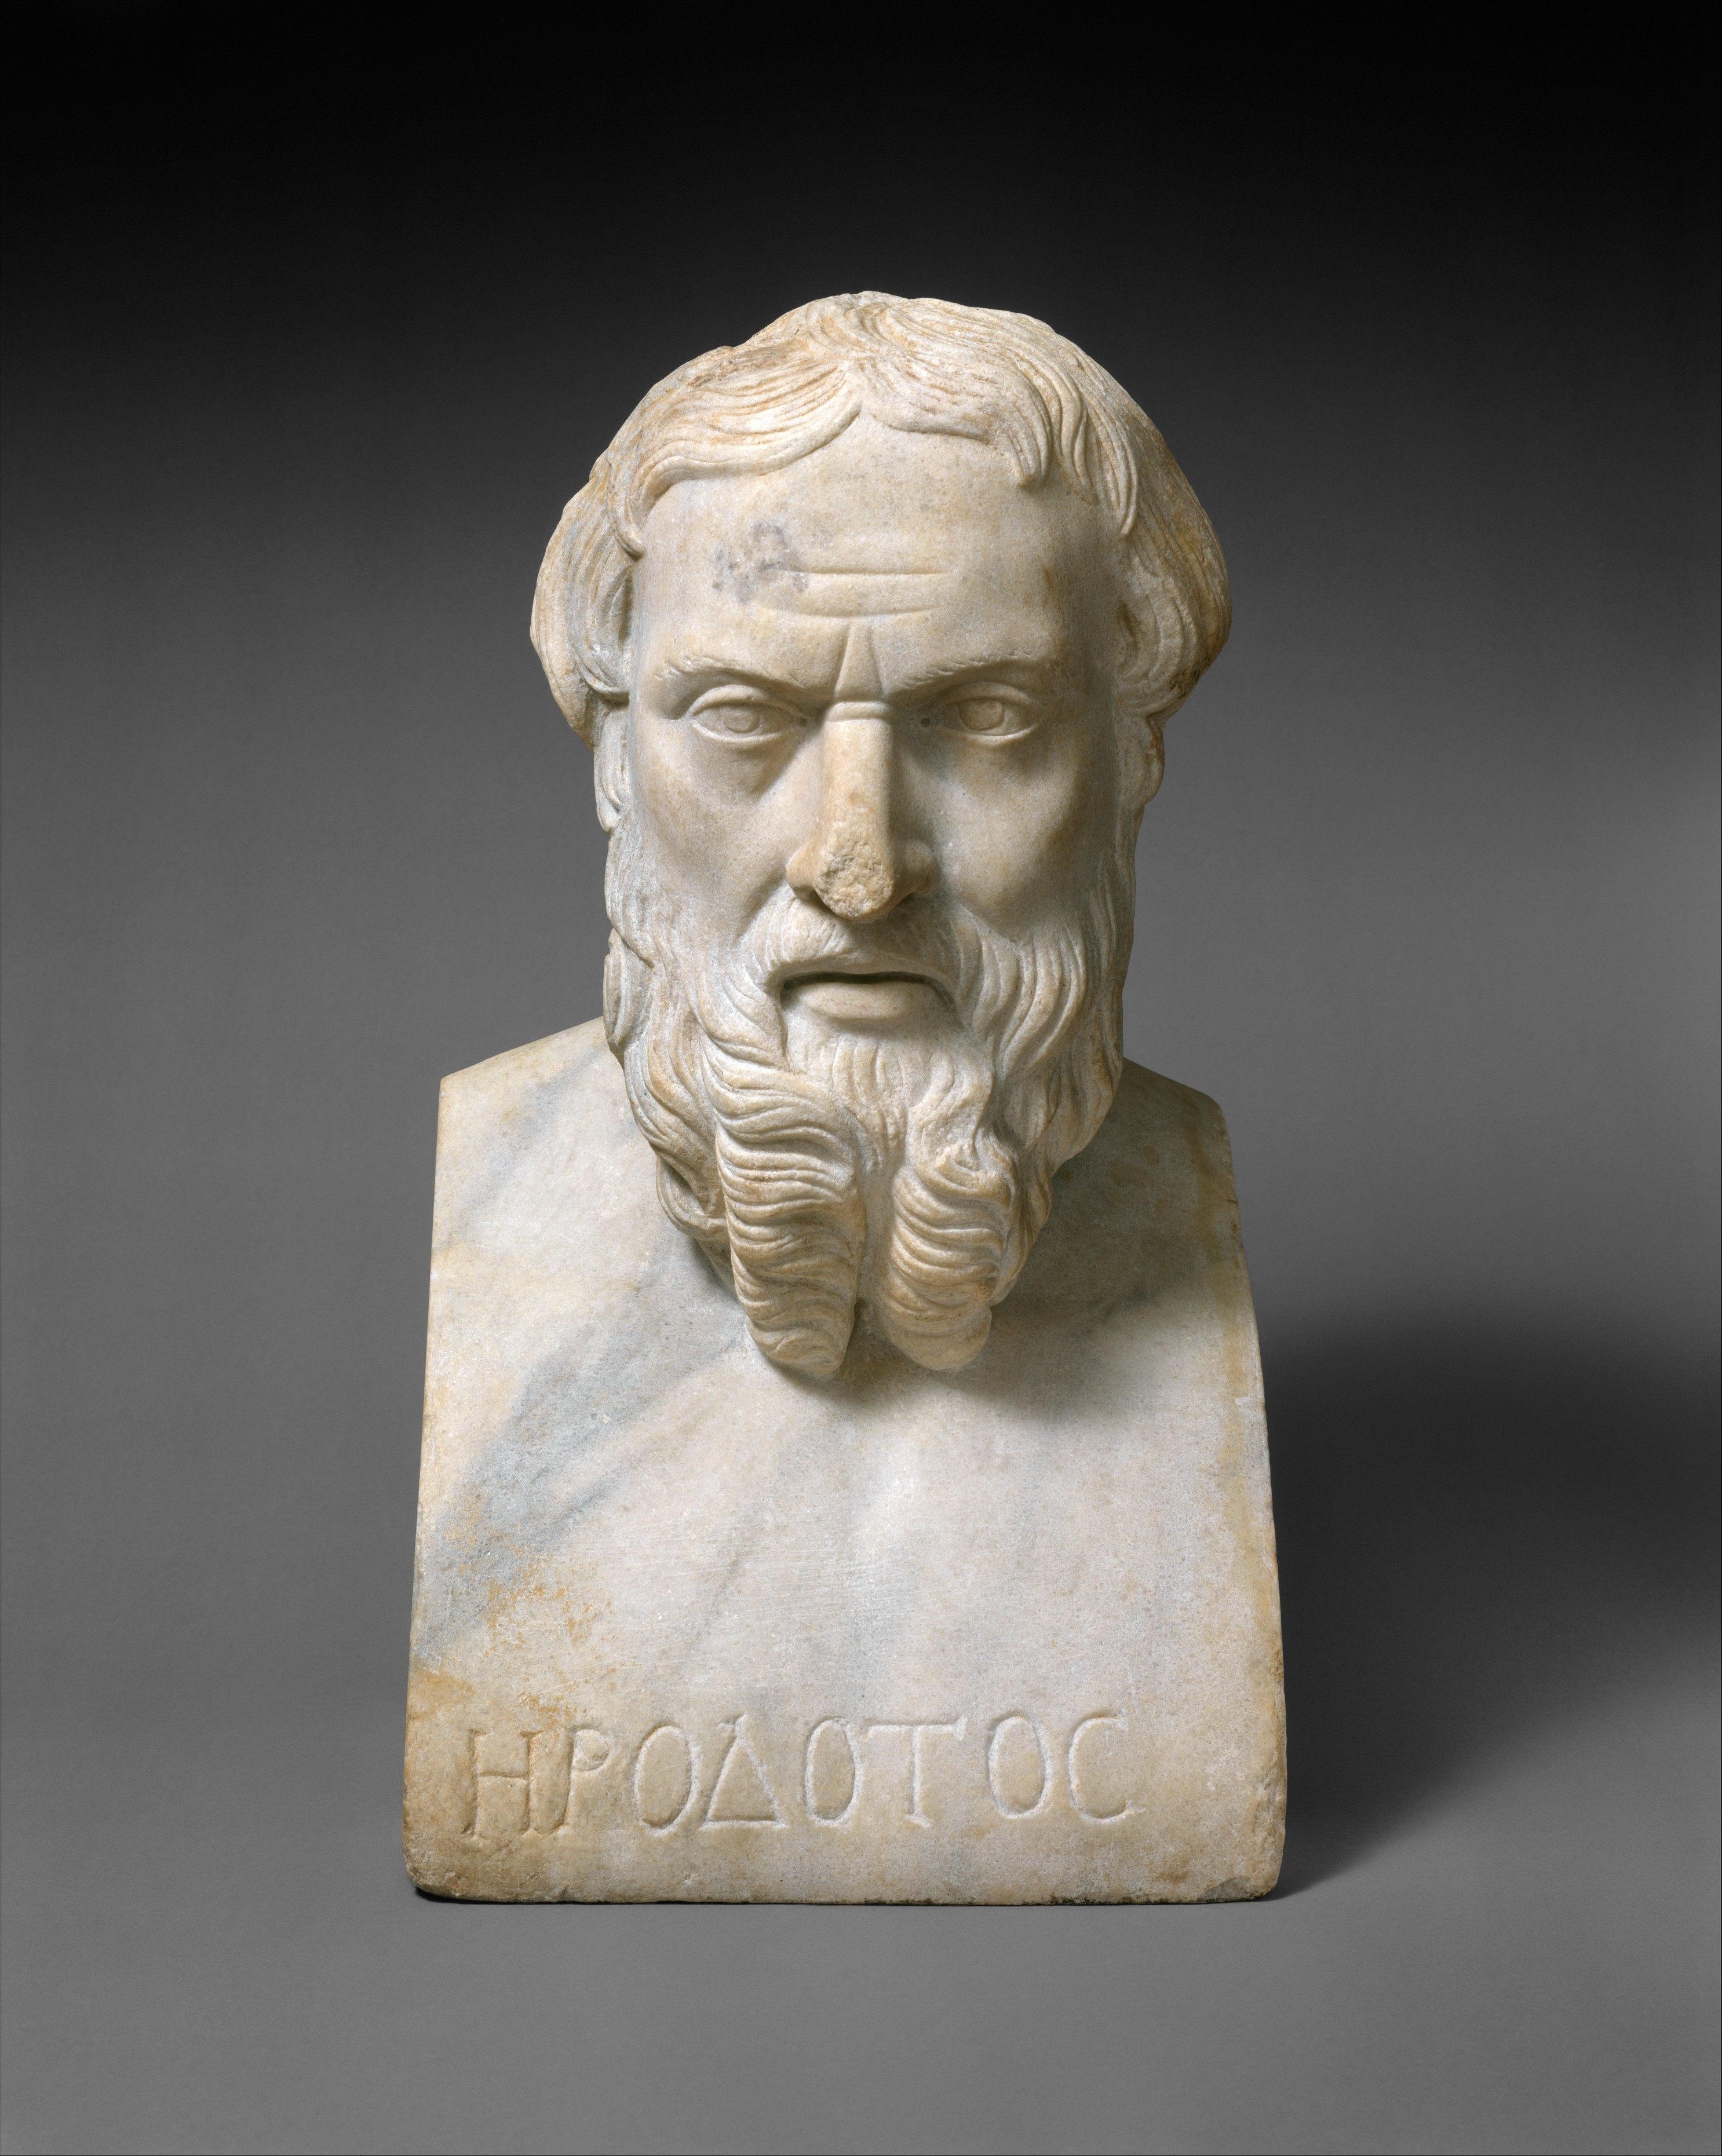 A Roman copy (2nd century AD) of a Greek [[Bust (sculpture)|bust]] of Herodotus from the first half of the 4th century BC